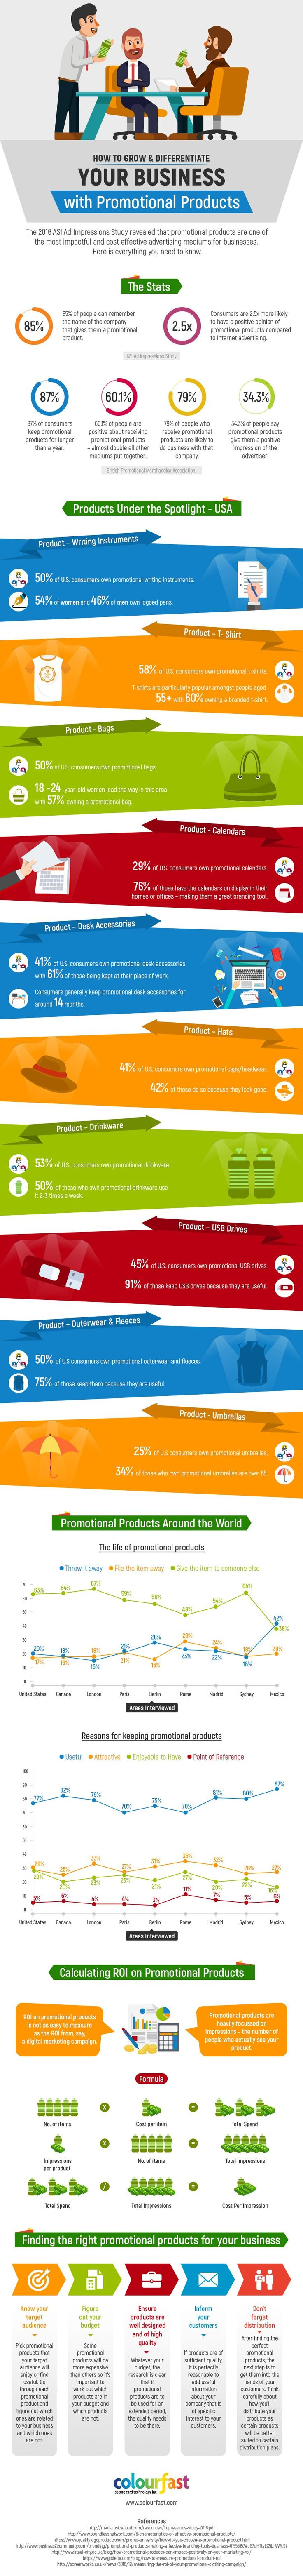 10 Promotional Products to Help You Grow & Differentiate Your #Business #Infographic #Marketing